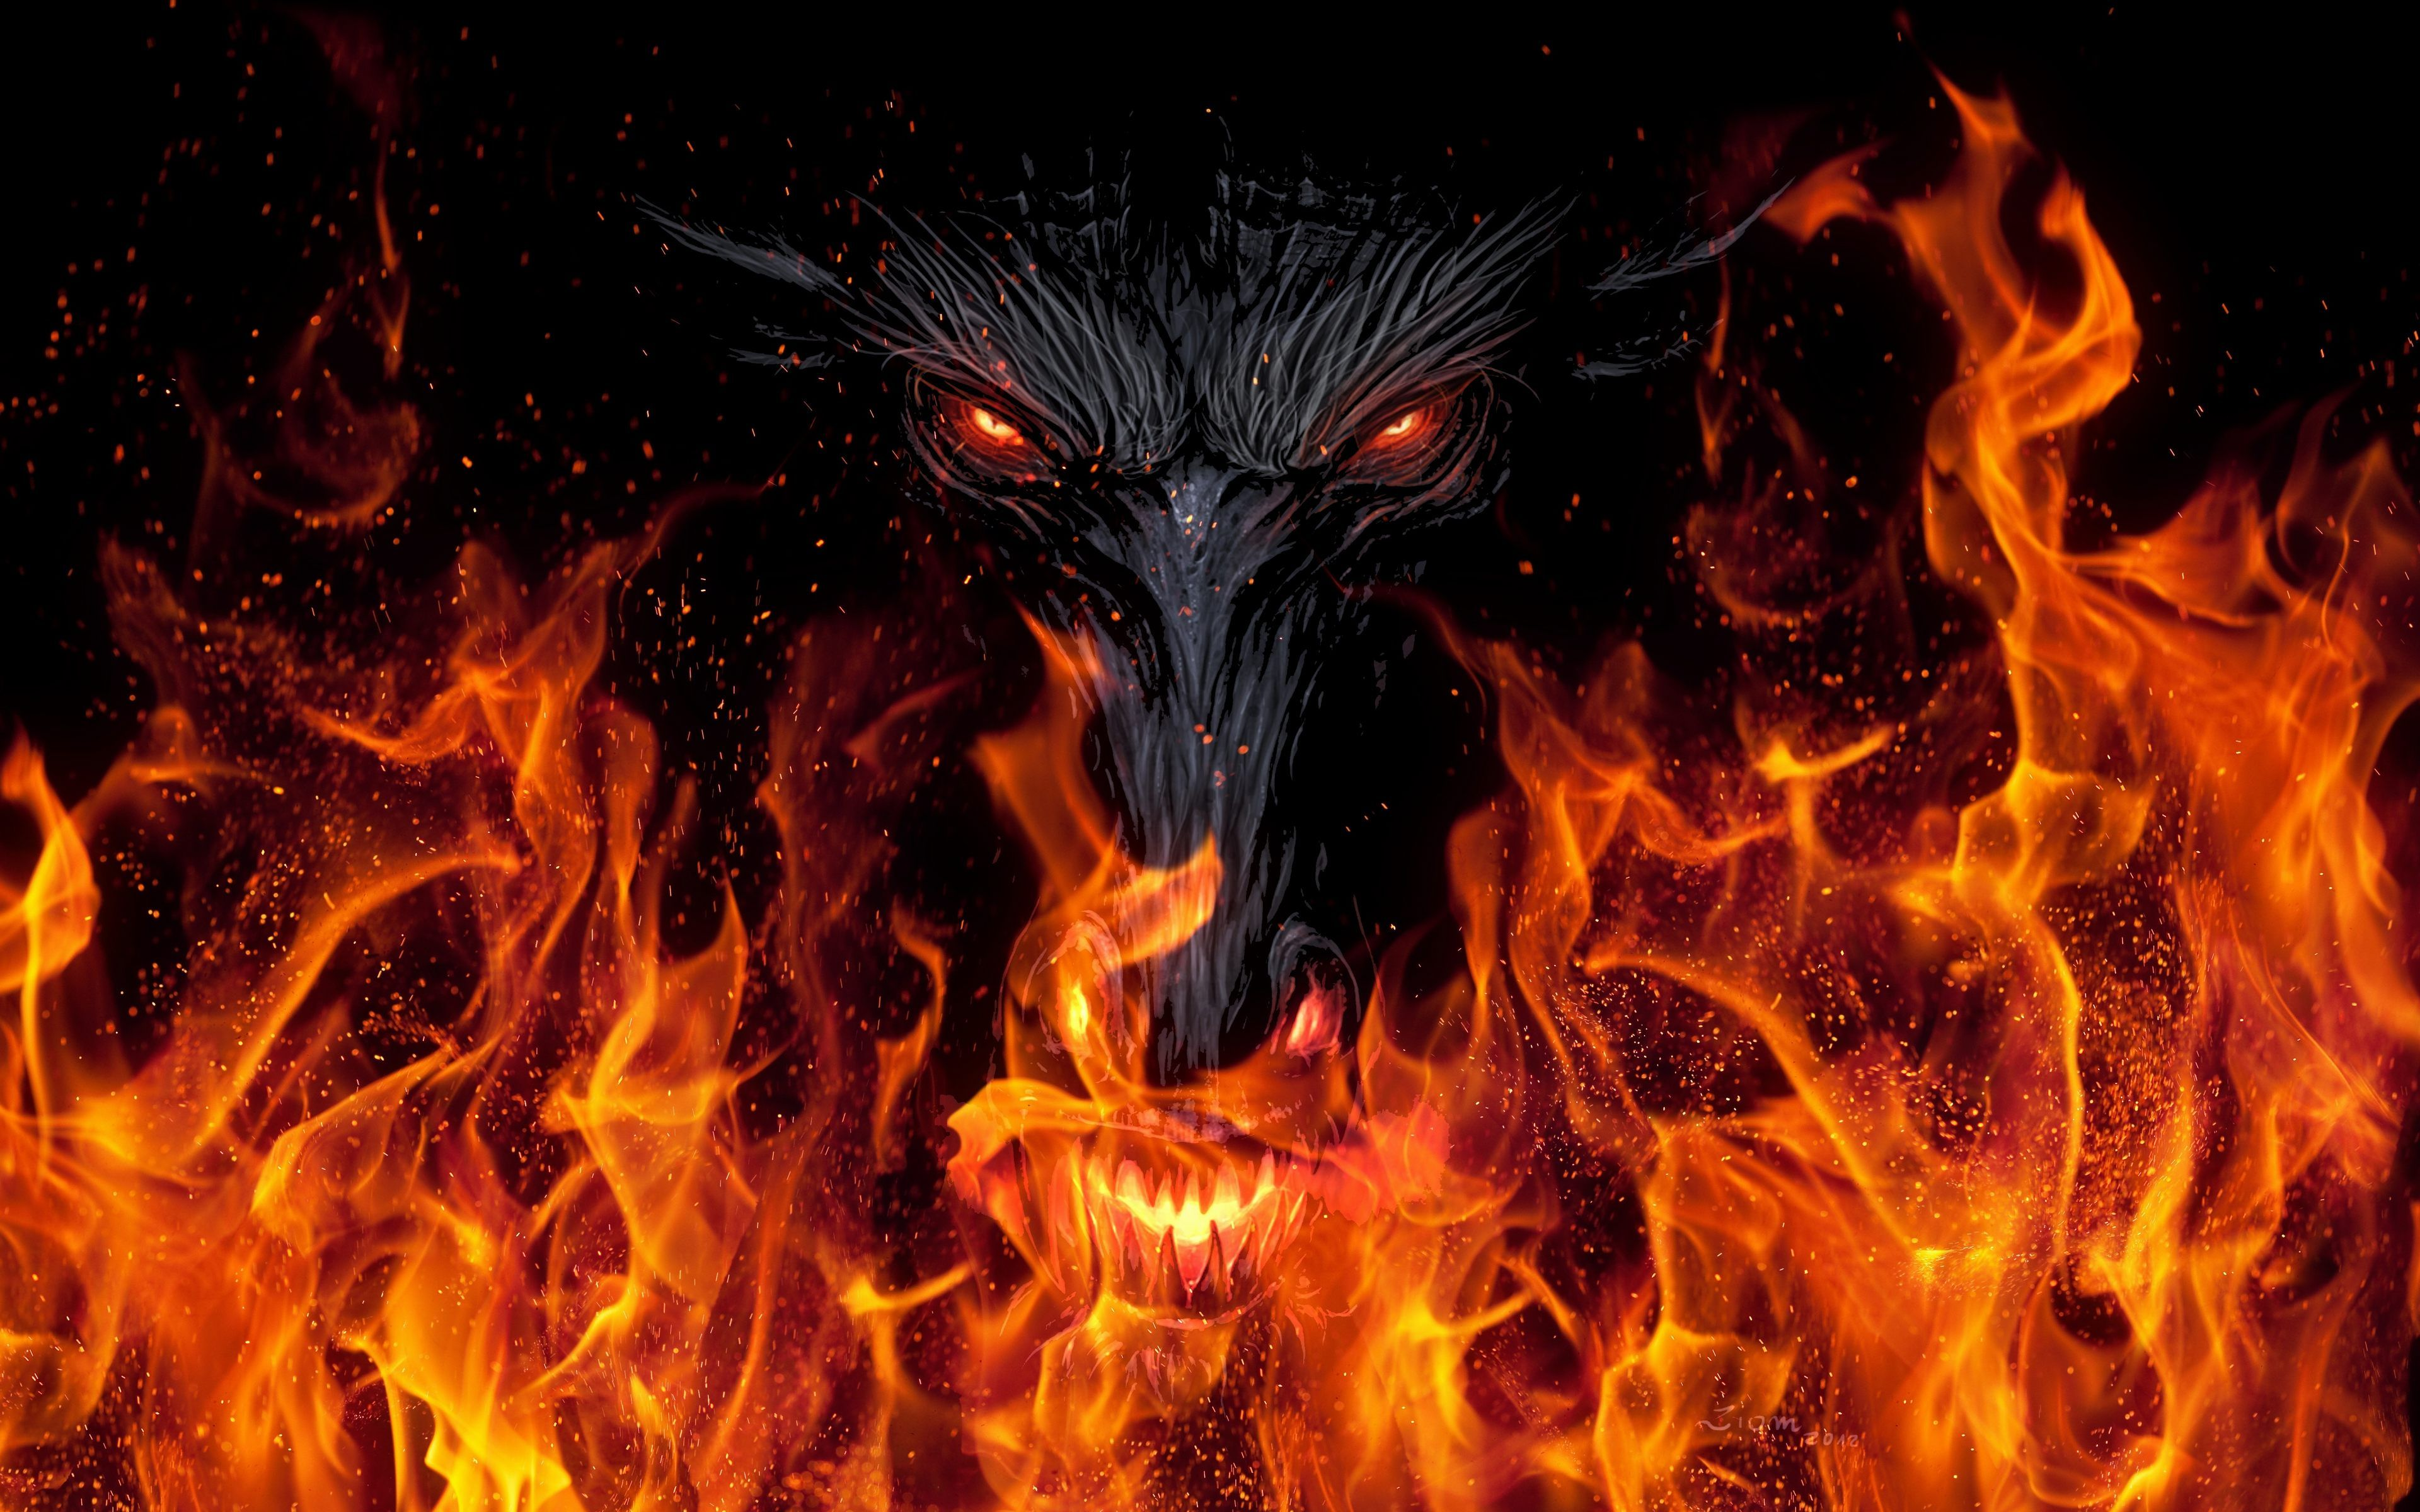 Fire Dragon Wallpapers Background Free Download Wallpapers Background 3840x 72 Kb